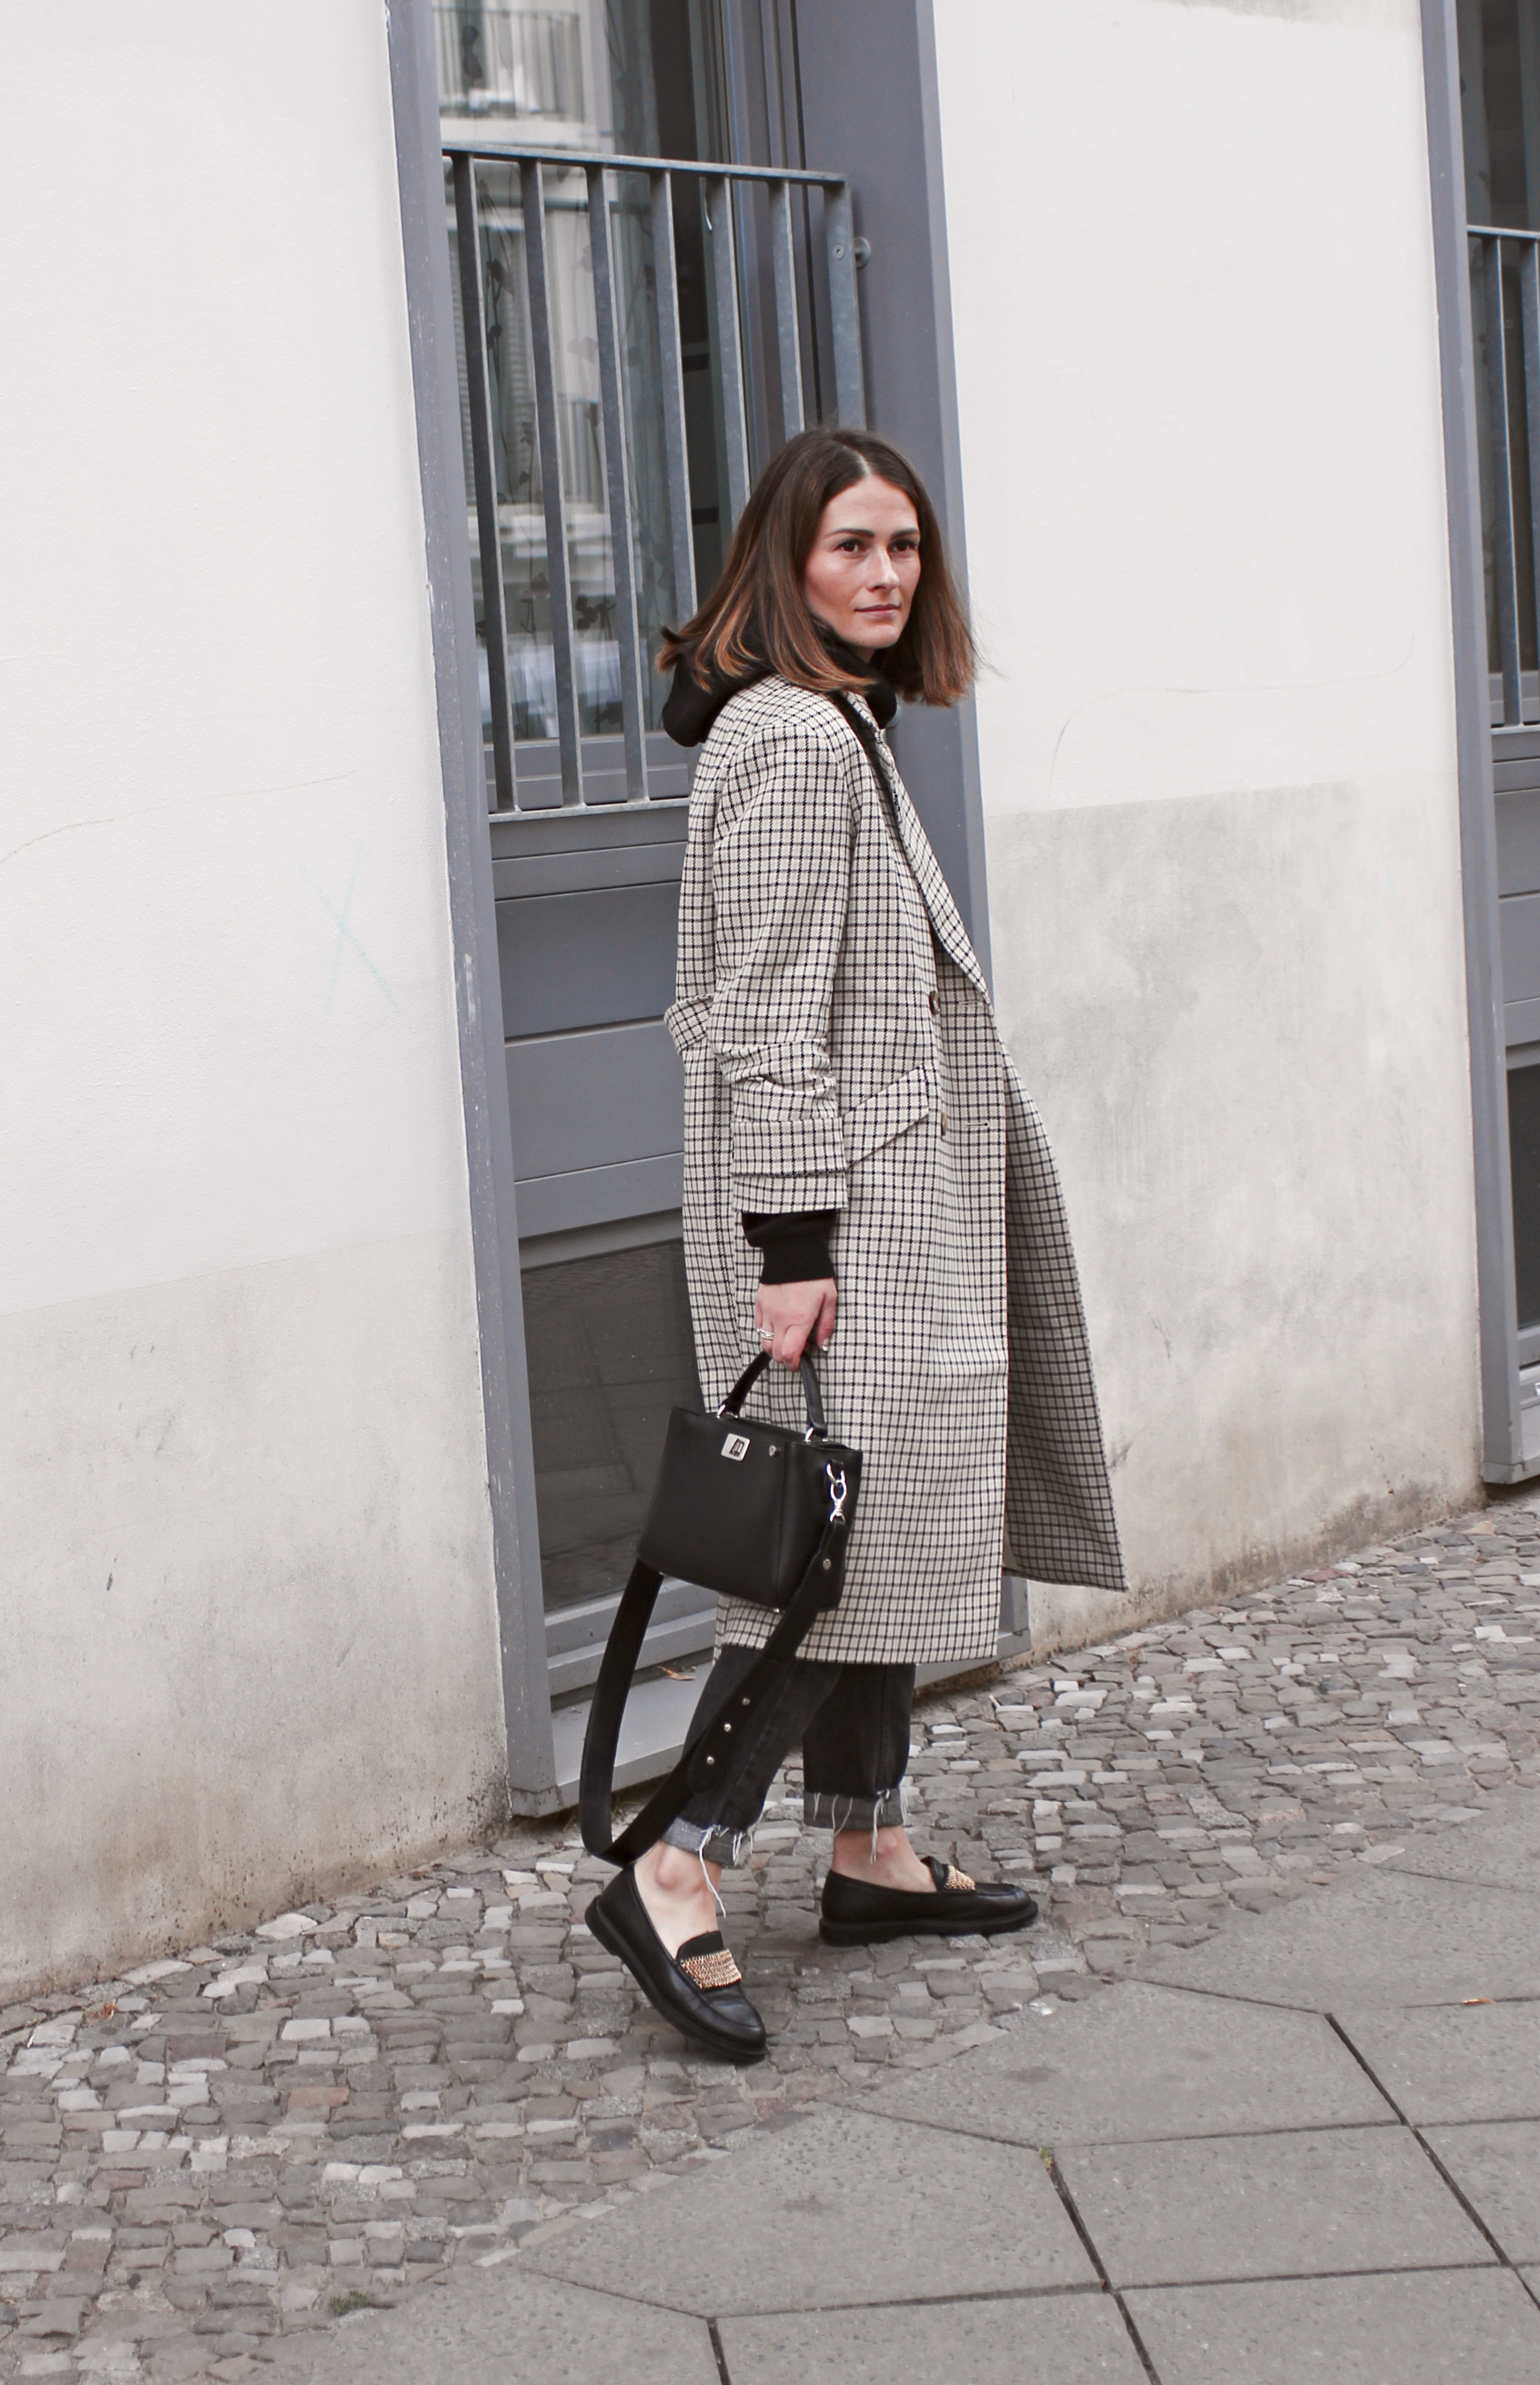 annaporter-fashionblogger-checkedcoat-hm-1.jpg